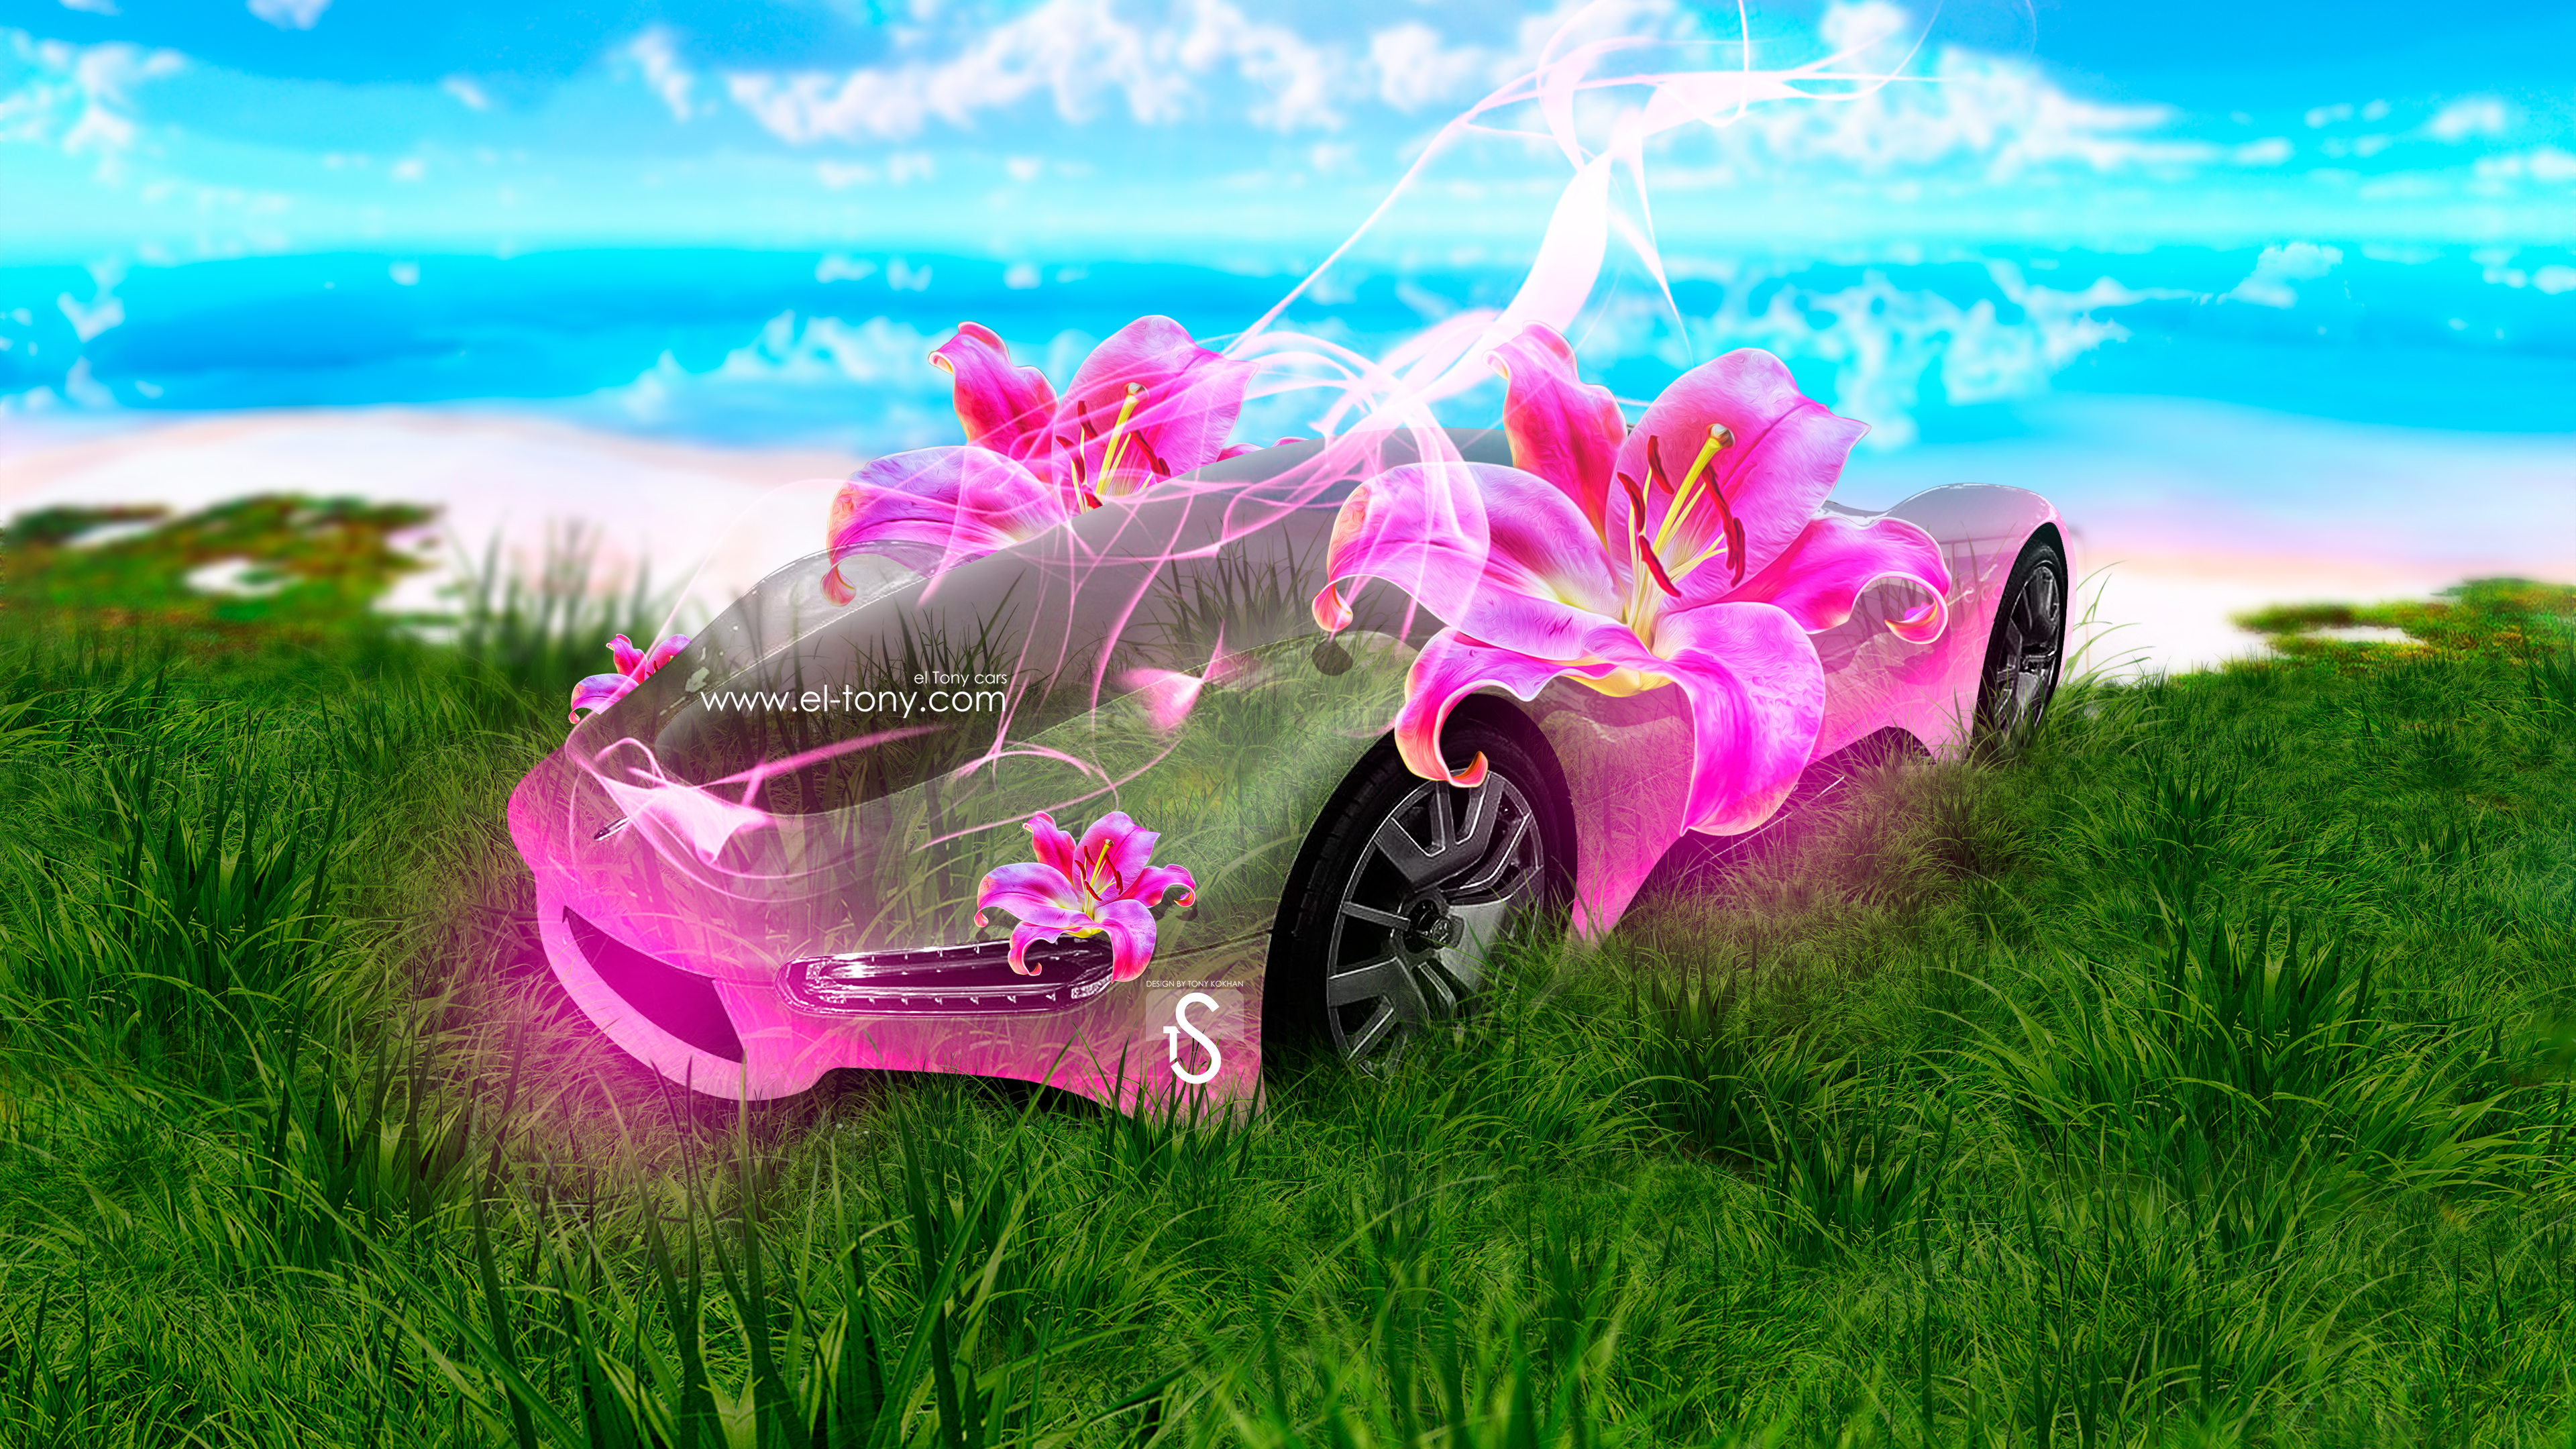 Superior Maserati Pininfarina Fantasy Flower Car 2014 Design By